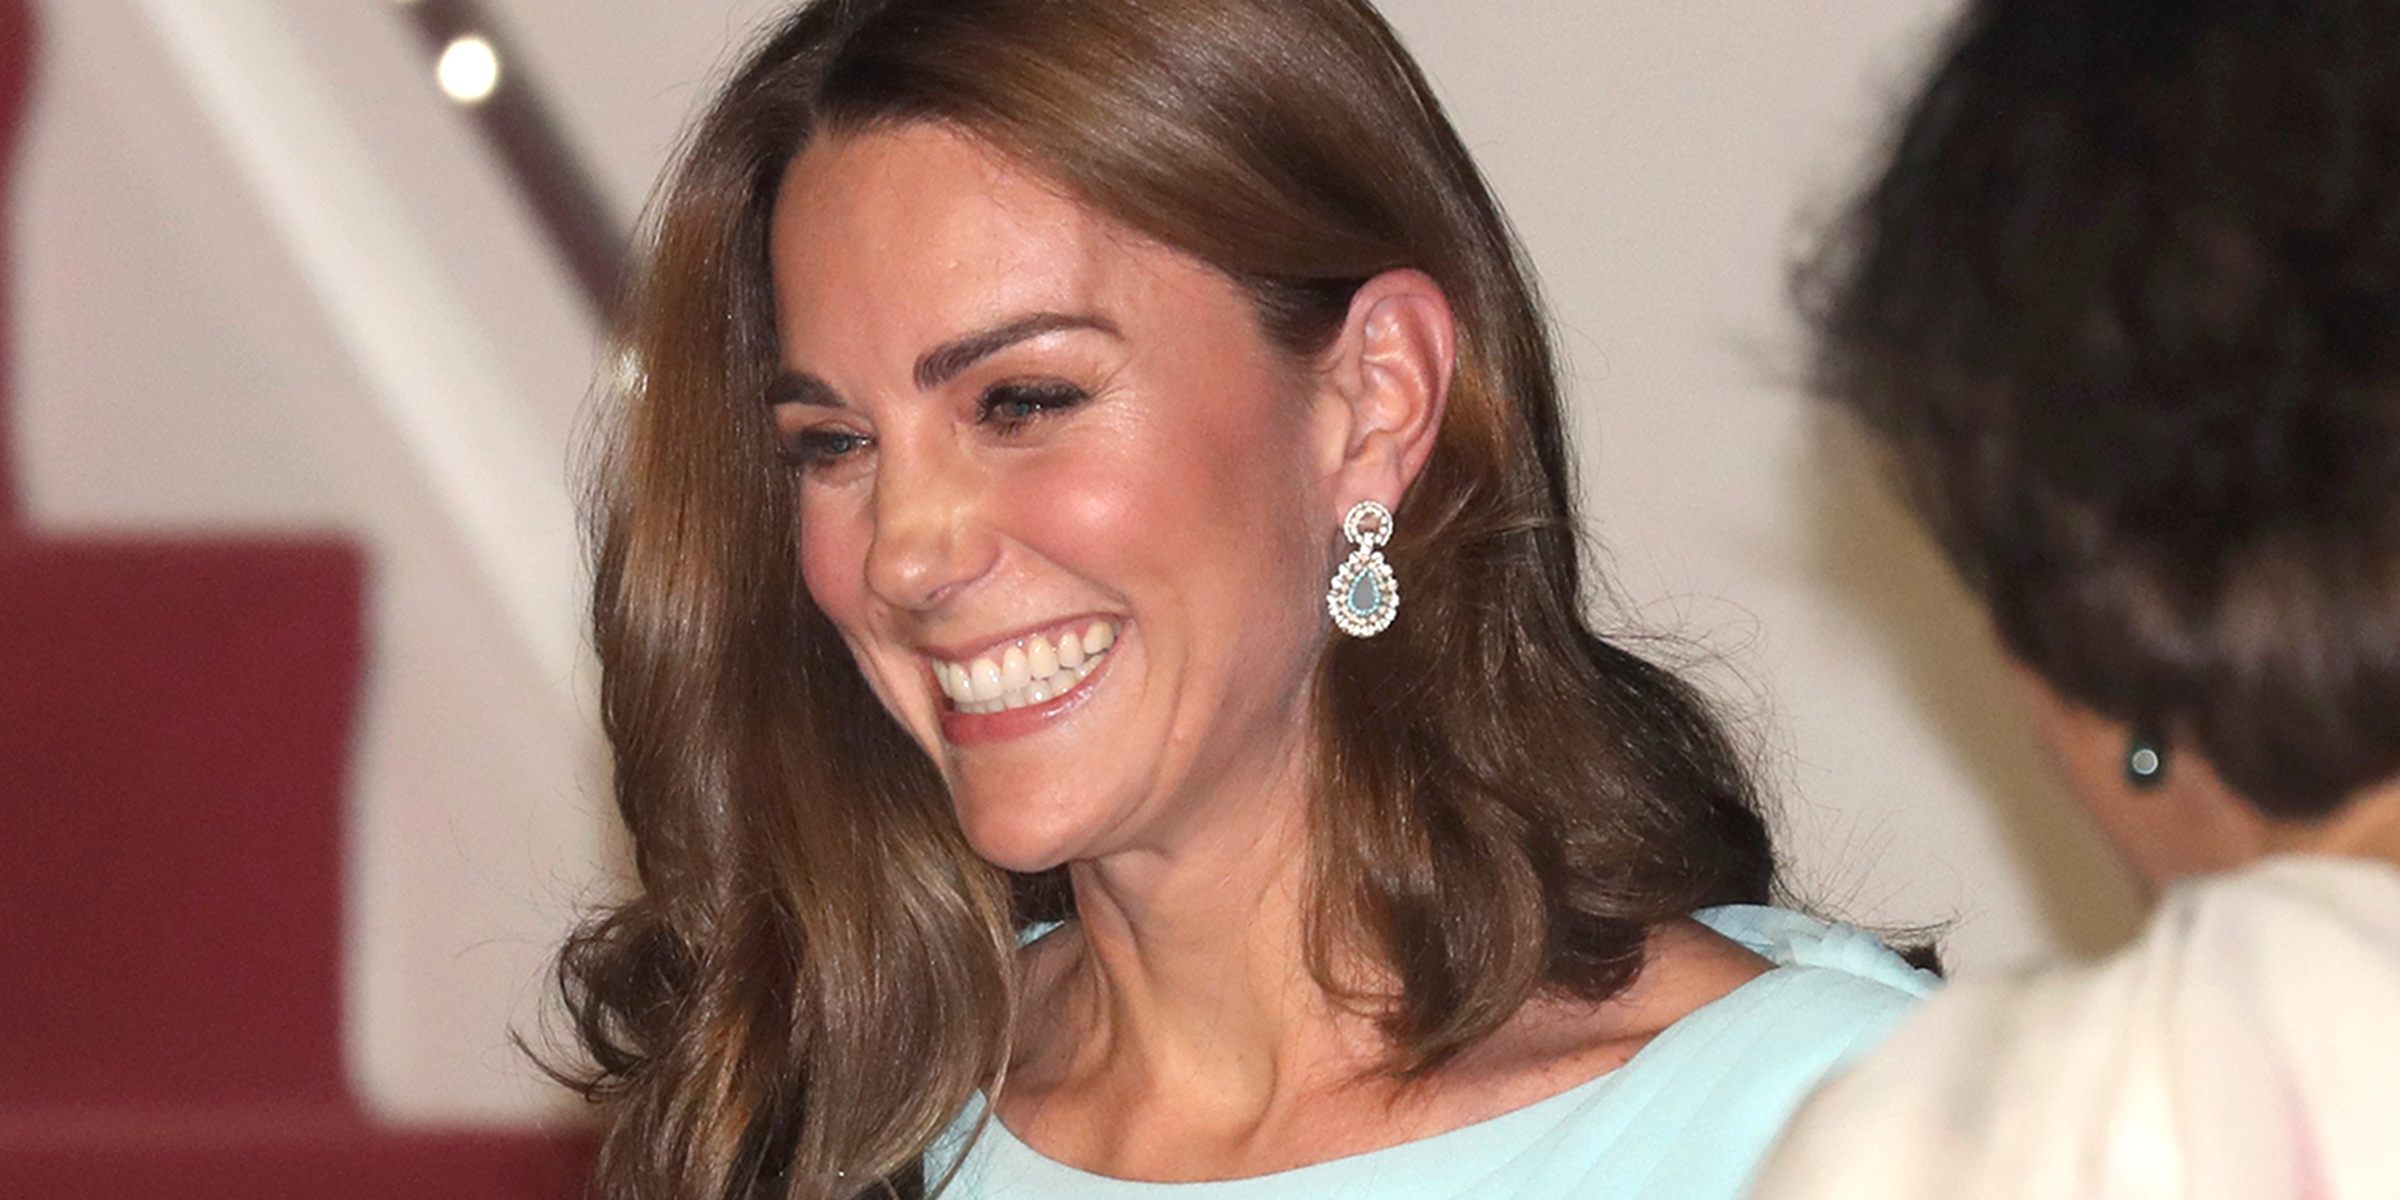 Kate Middleton wears a colorful ombre outfit for first stop on Pakistan tour